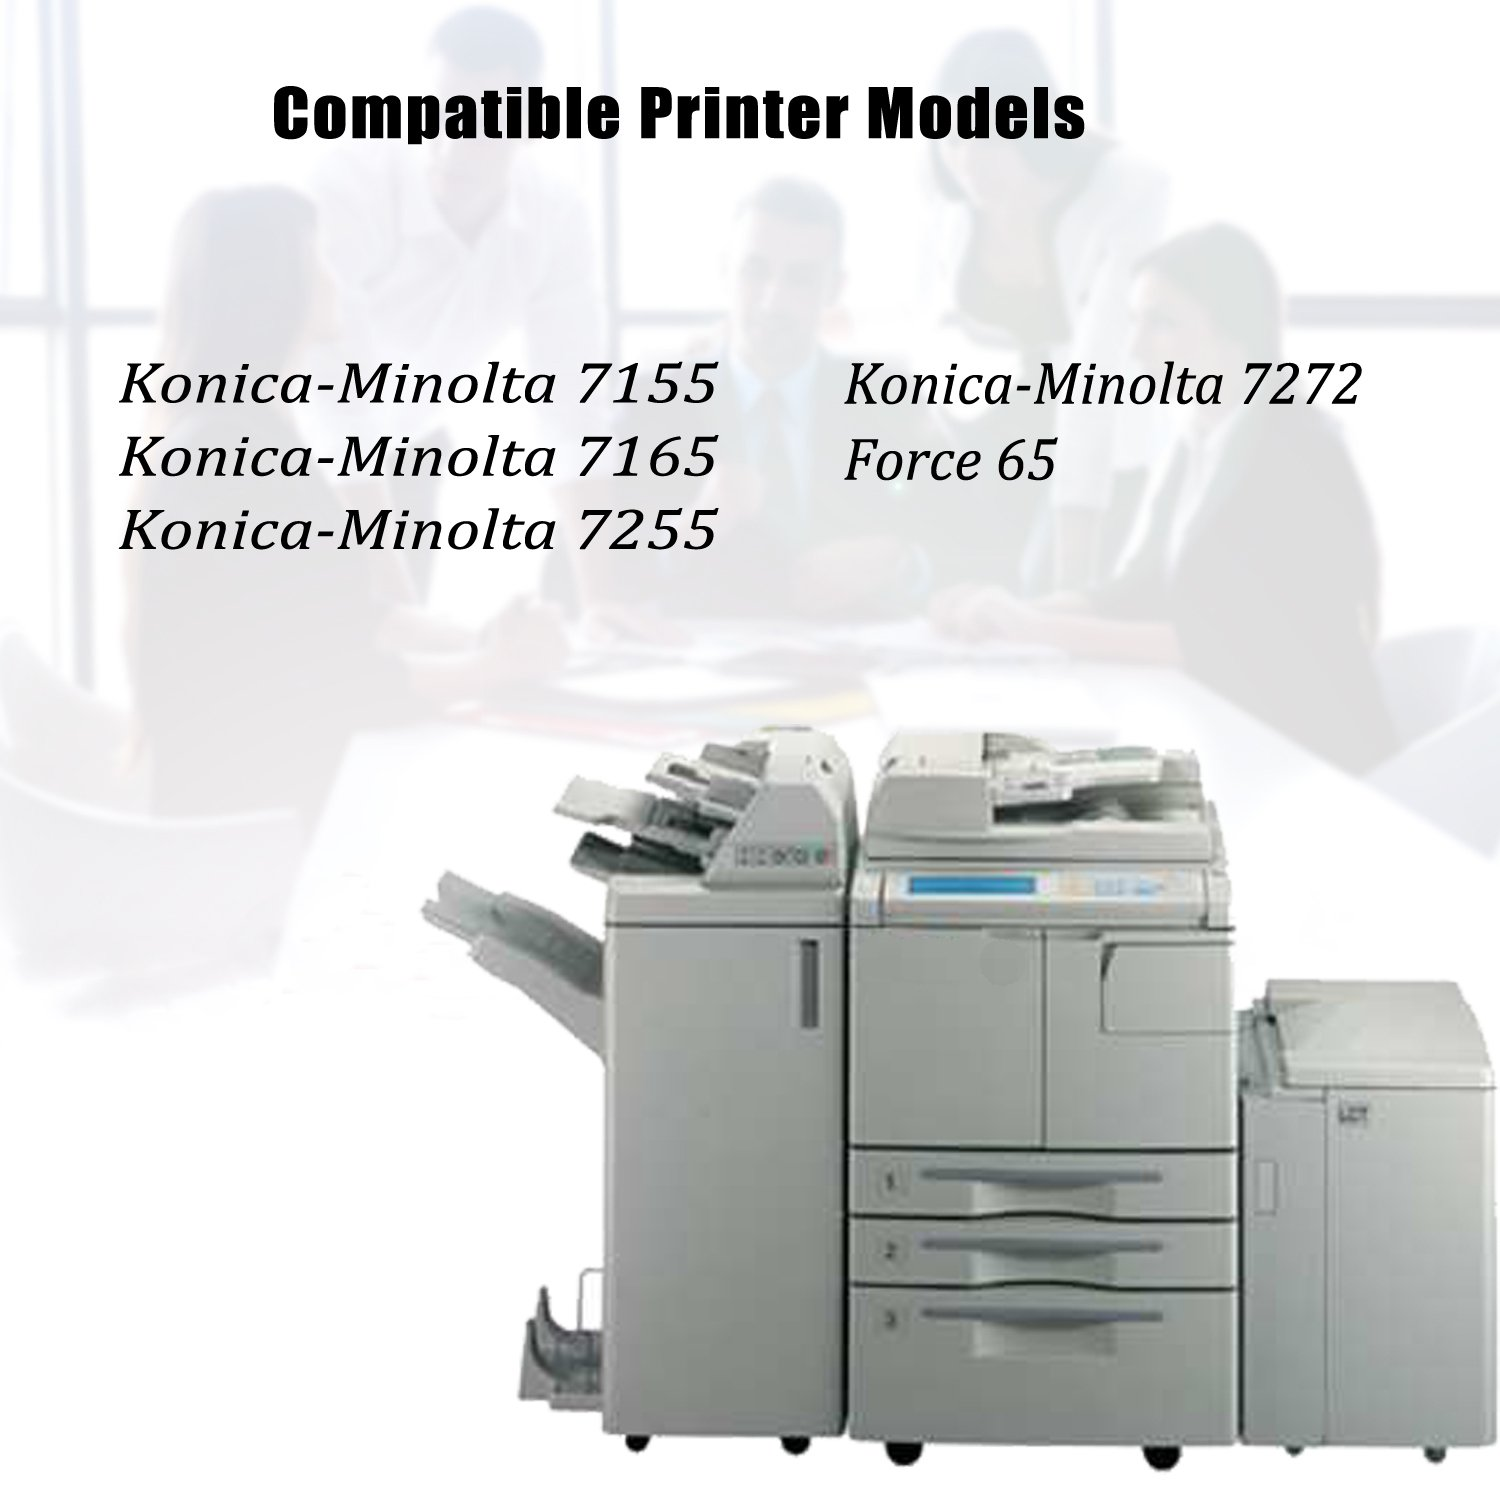 KONICA 7272 PRINTER WINDOWS 8.1 DRIVER DOWNLOAD